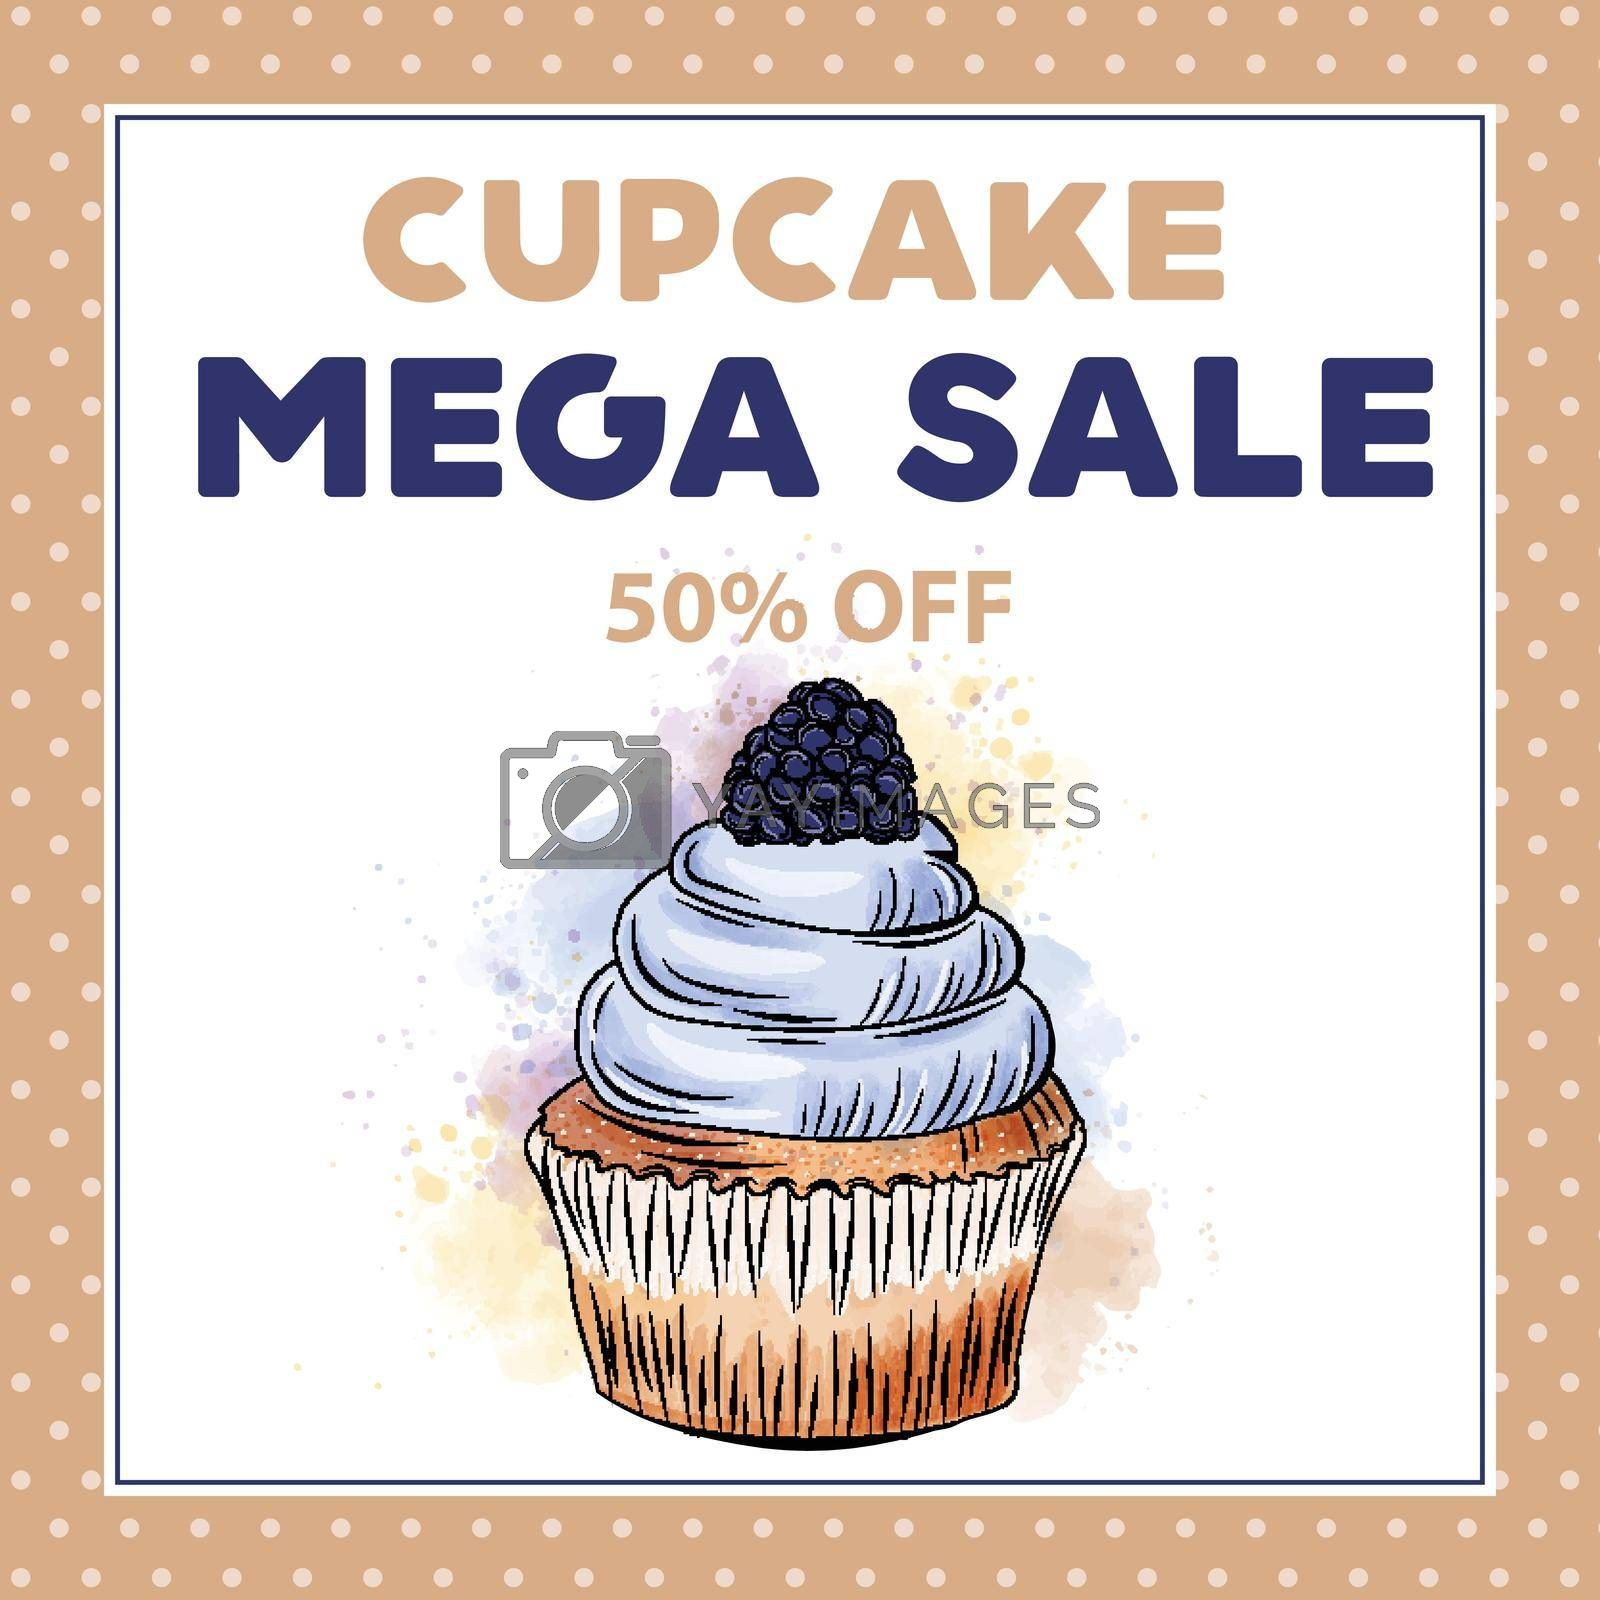 Cupcake Mega Sale banner template with cupcake. Sales ad template for the web site, social media, shop, flyer and more.